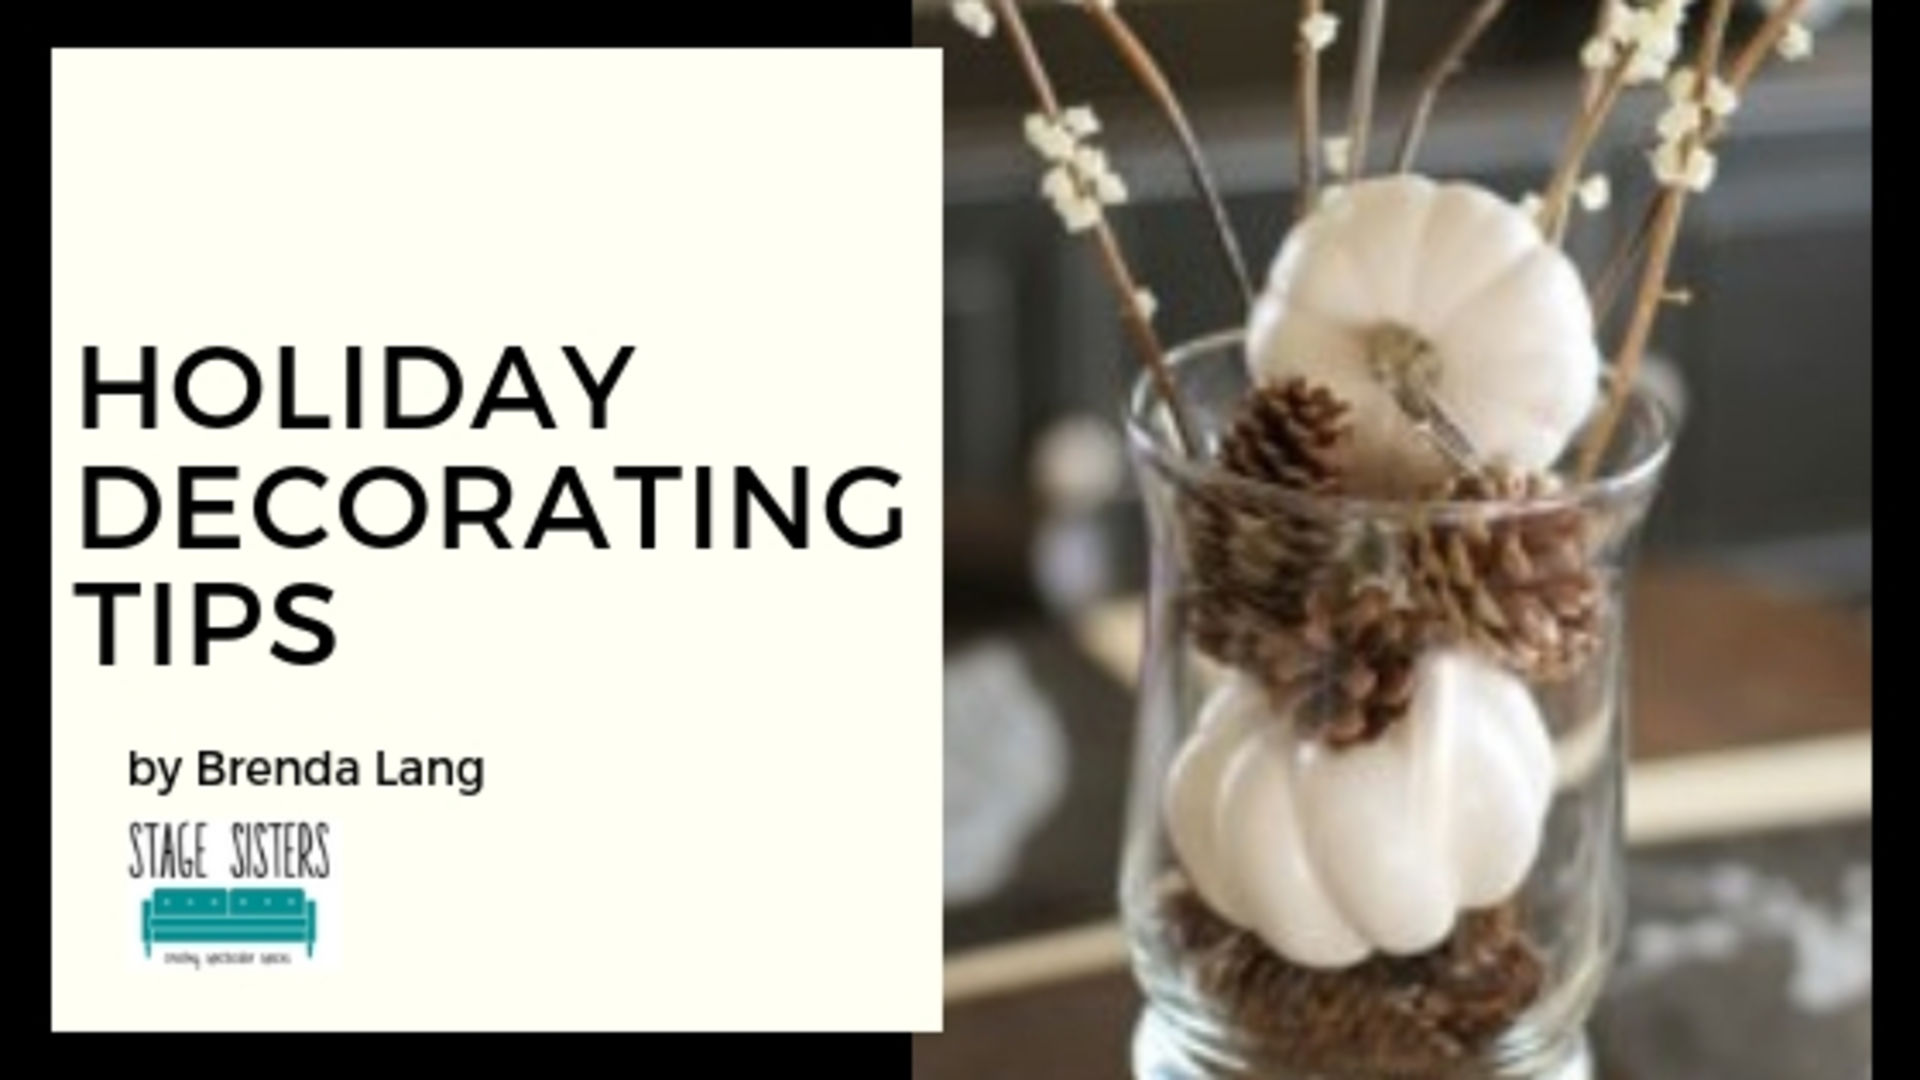 Repurpose Thanksgiving Decor for the Holidays, by Brenda Lang